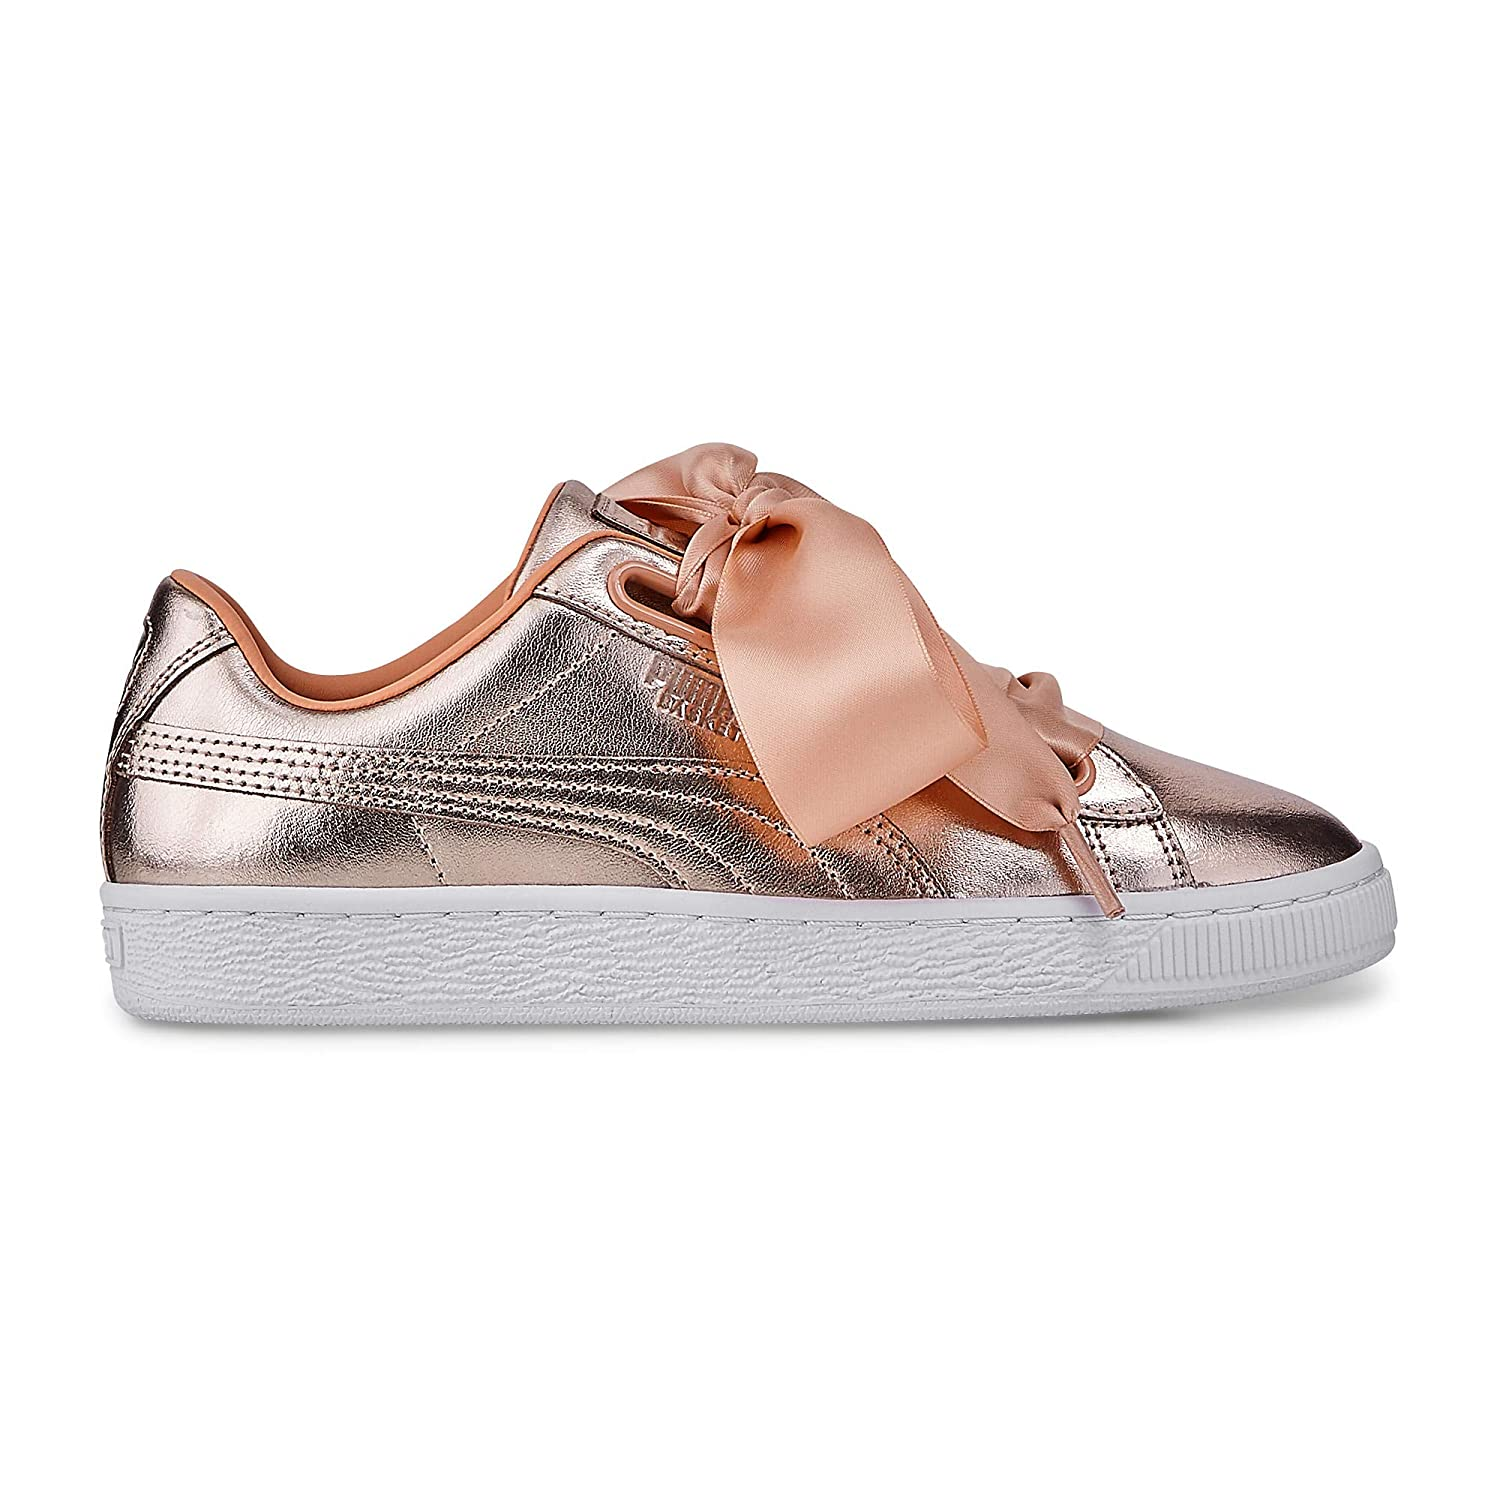 online retailer 2ab3b 768ad Puma Basket Heart Luxe W Shoes: Amazon.co.uk: Shoes & Bags